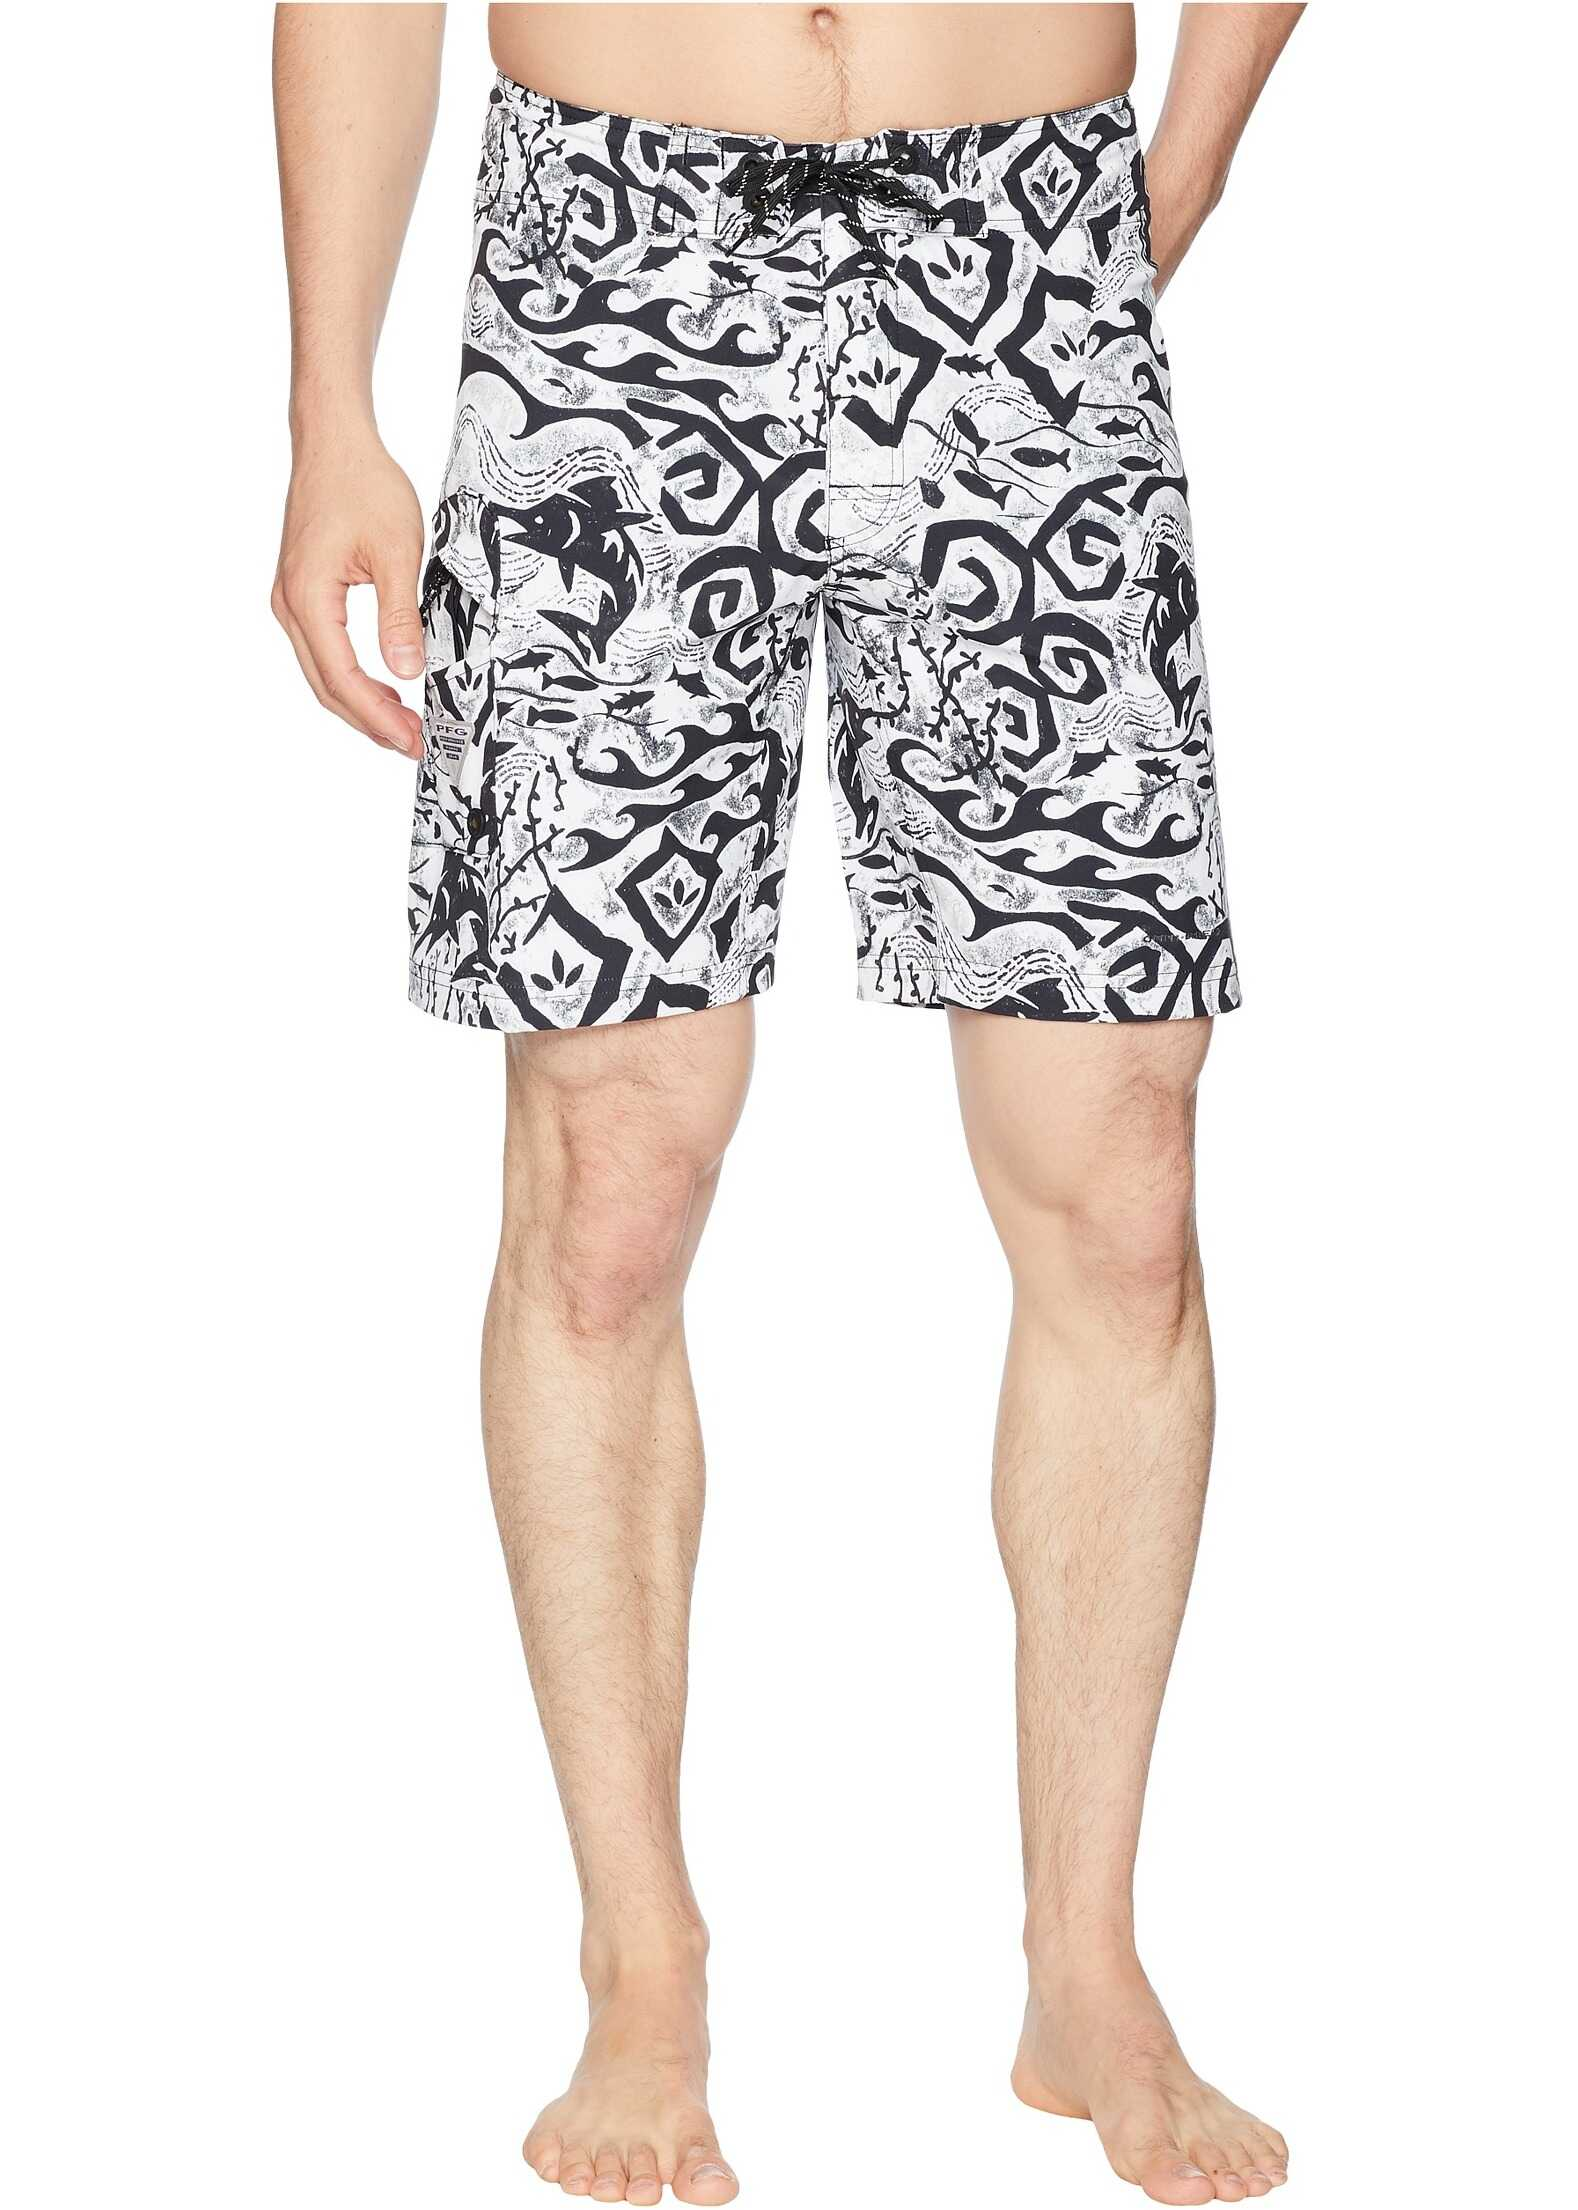 Columbia PFG Offshore II 9 inch Board Shorts Black Deep Sea Batik